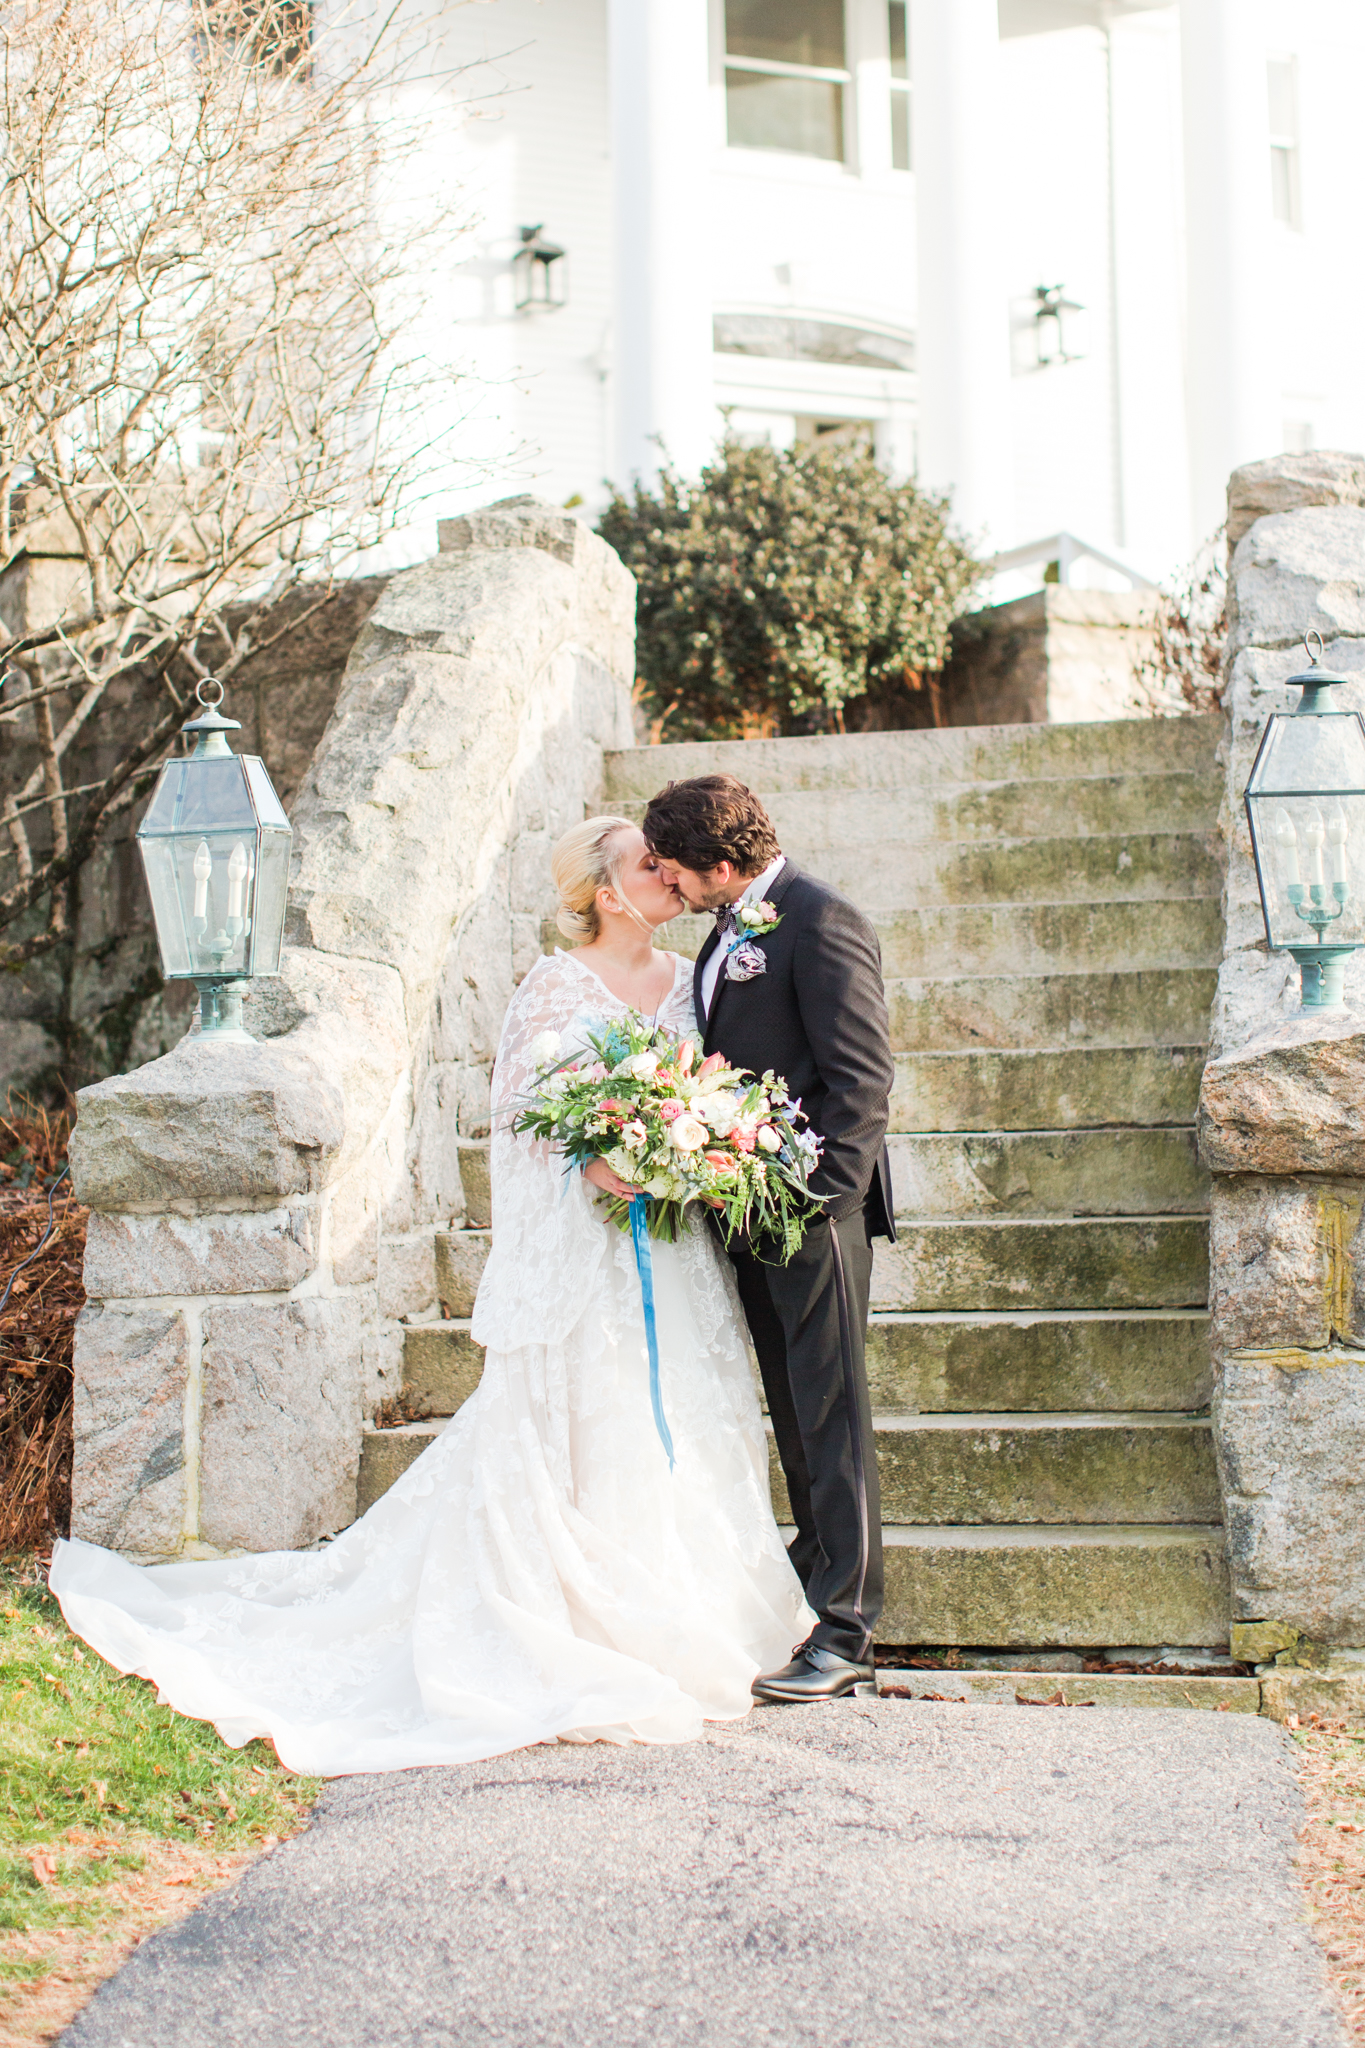 Haley Mansion Winter Wedding - Shaina Lee Photography-290.jpg